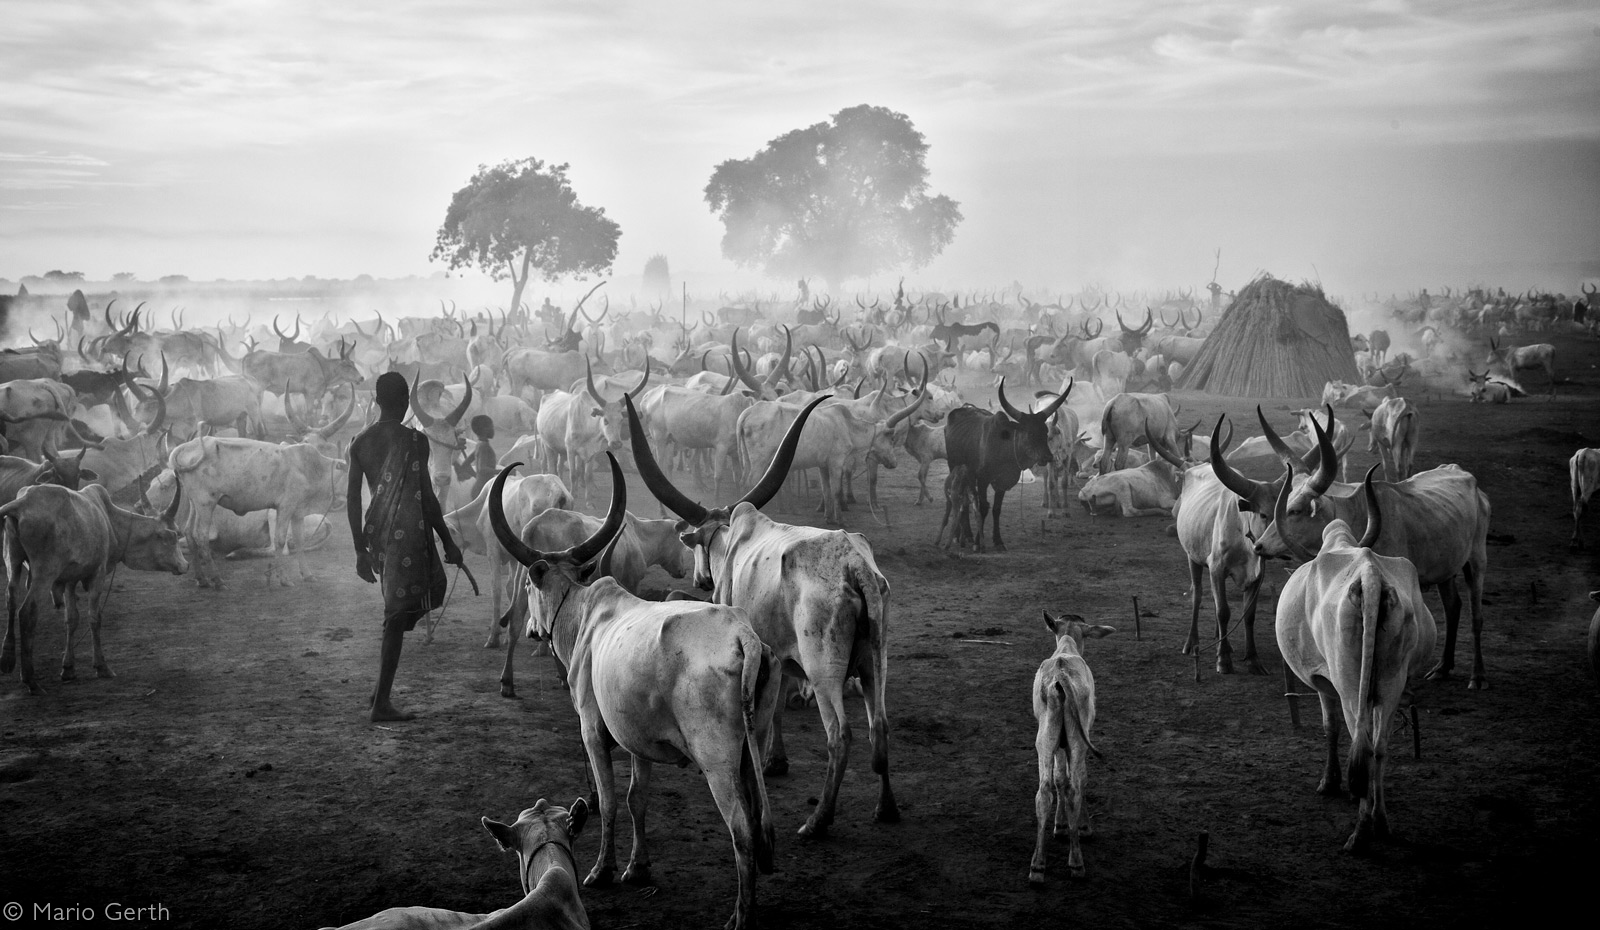 Mundari gather together in huge cattle camps where about 5,000 cows converge at night alongside the Nile River. South Sudan © Mario Gerth